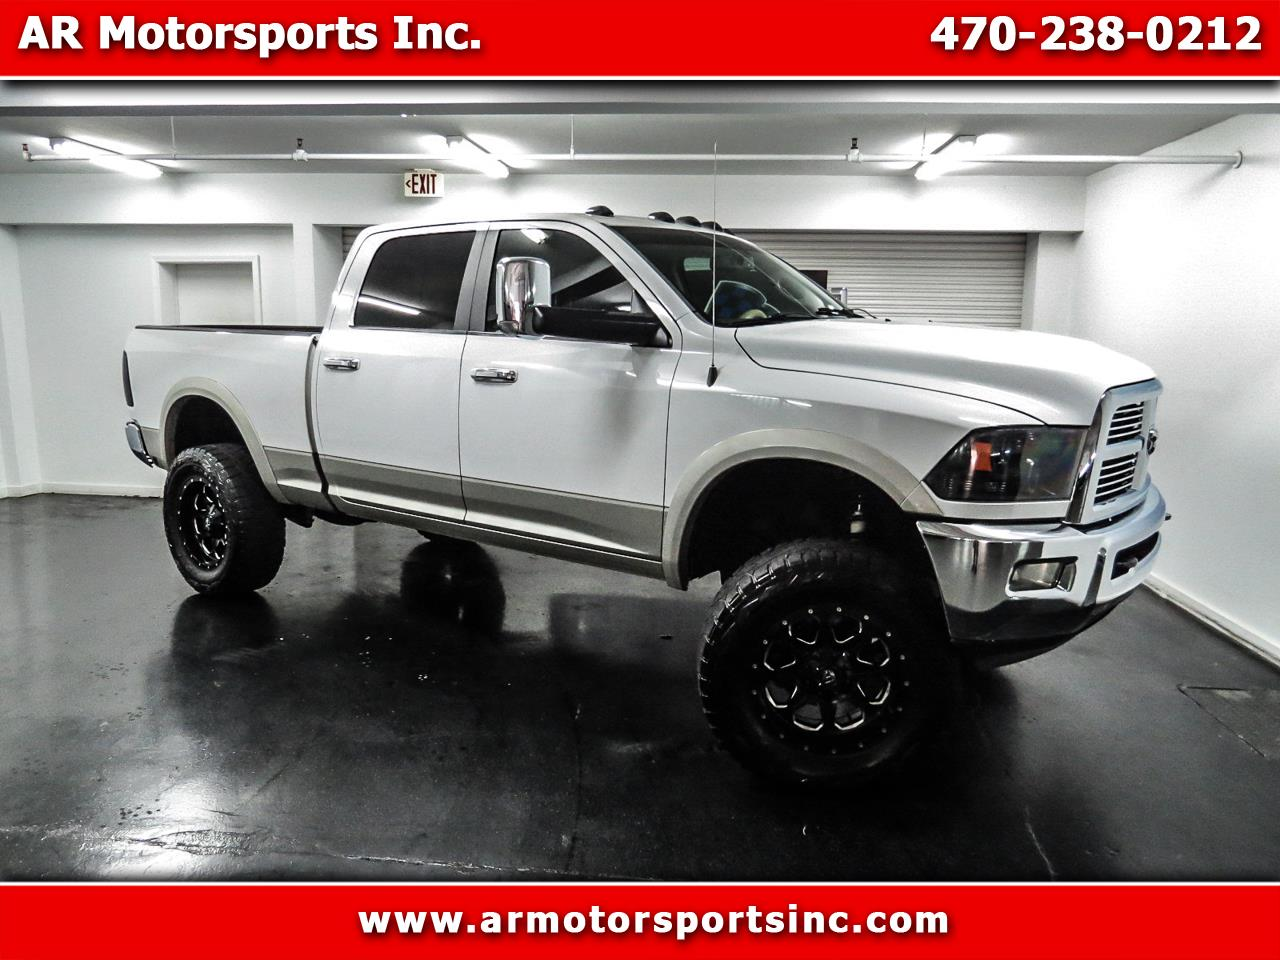 2011 Dodge 2500 HD 6.7L Larami 4x4